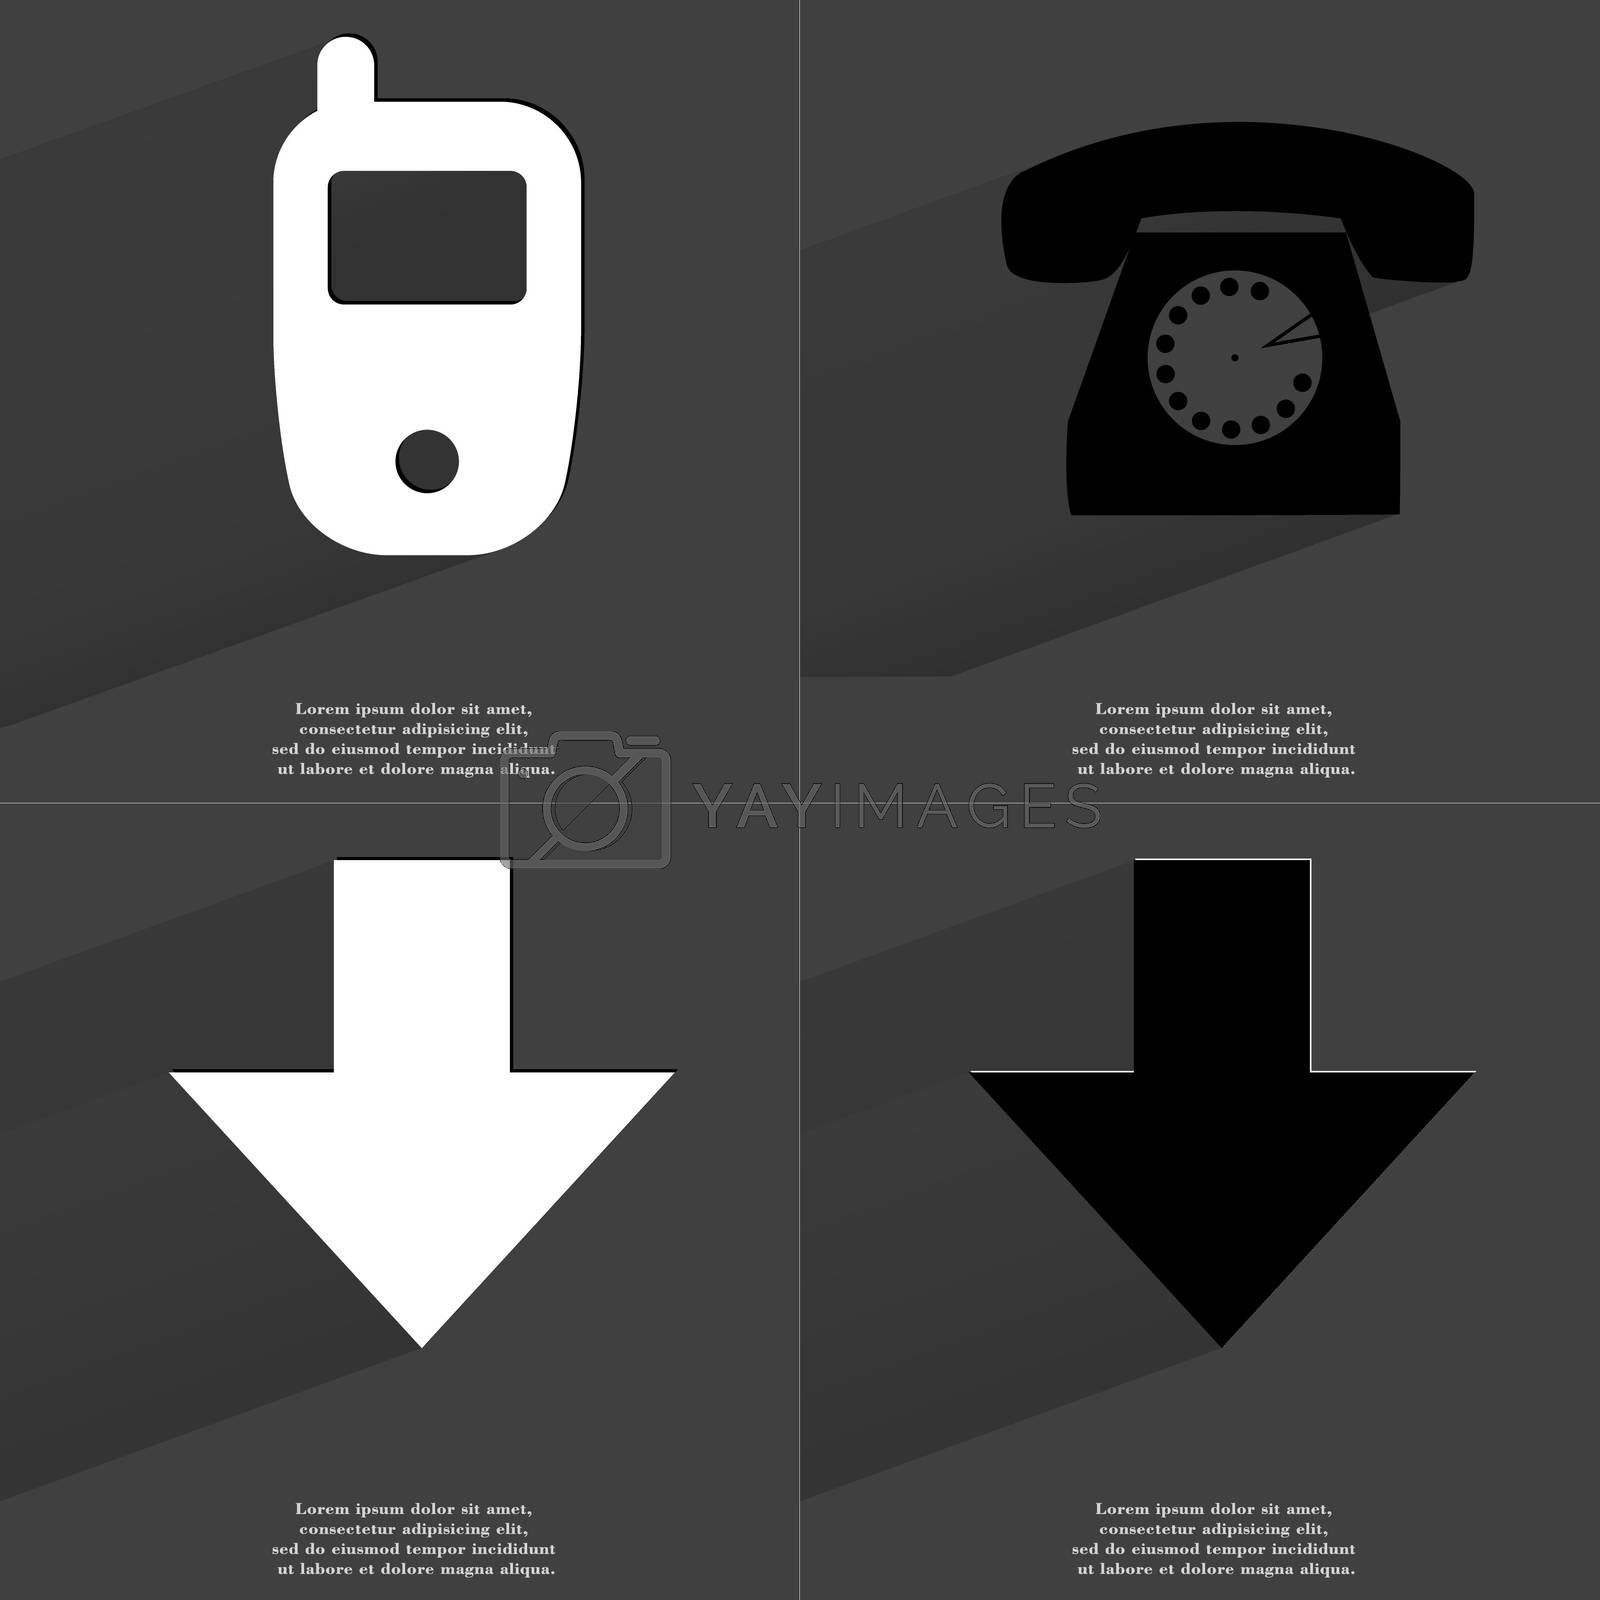 Royalty free image of Mobile, Retro phone, Arrow directed down. Symbols with long shadow. Flat design by serhii_lohvyniuk